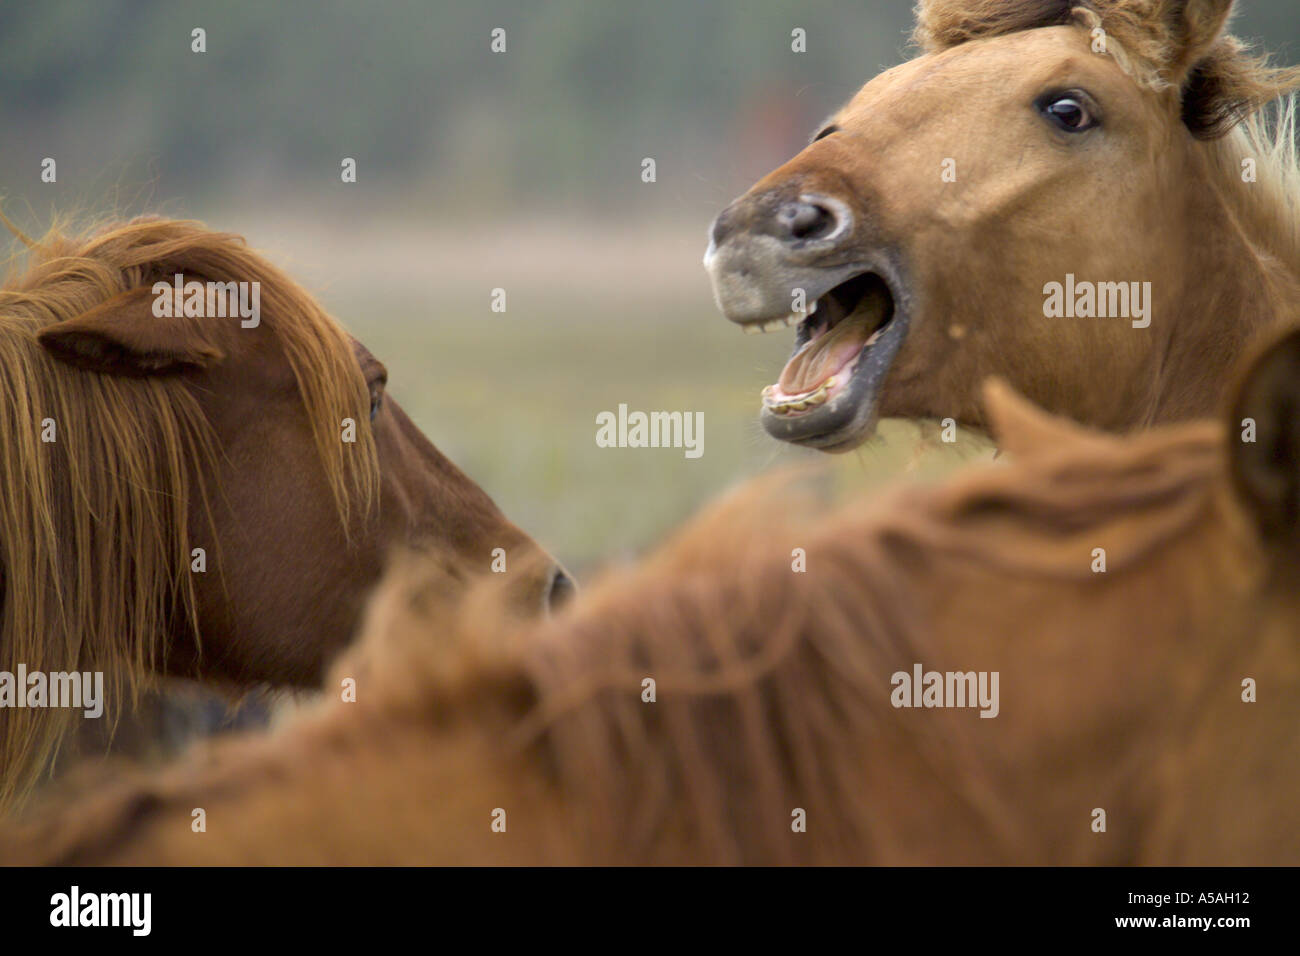 Spanish Mustang mares - Stock Image